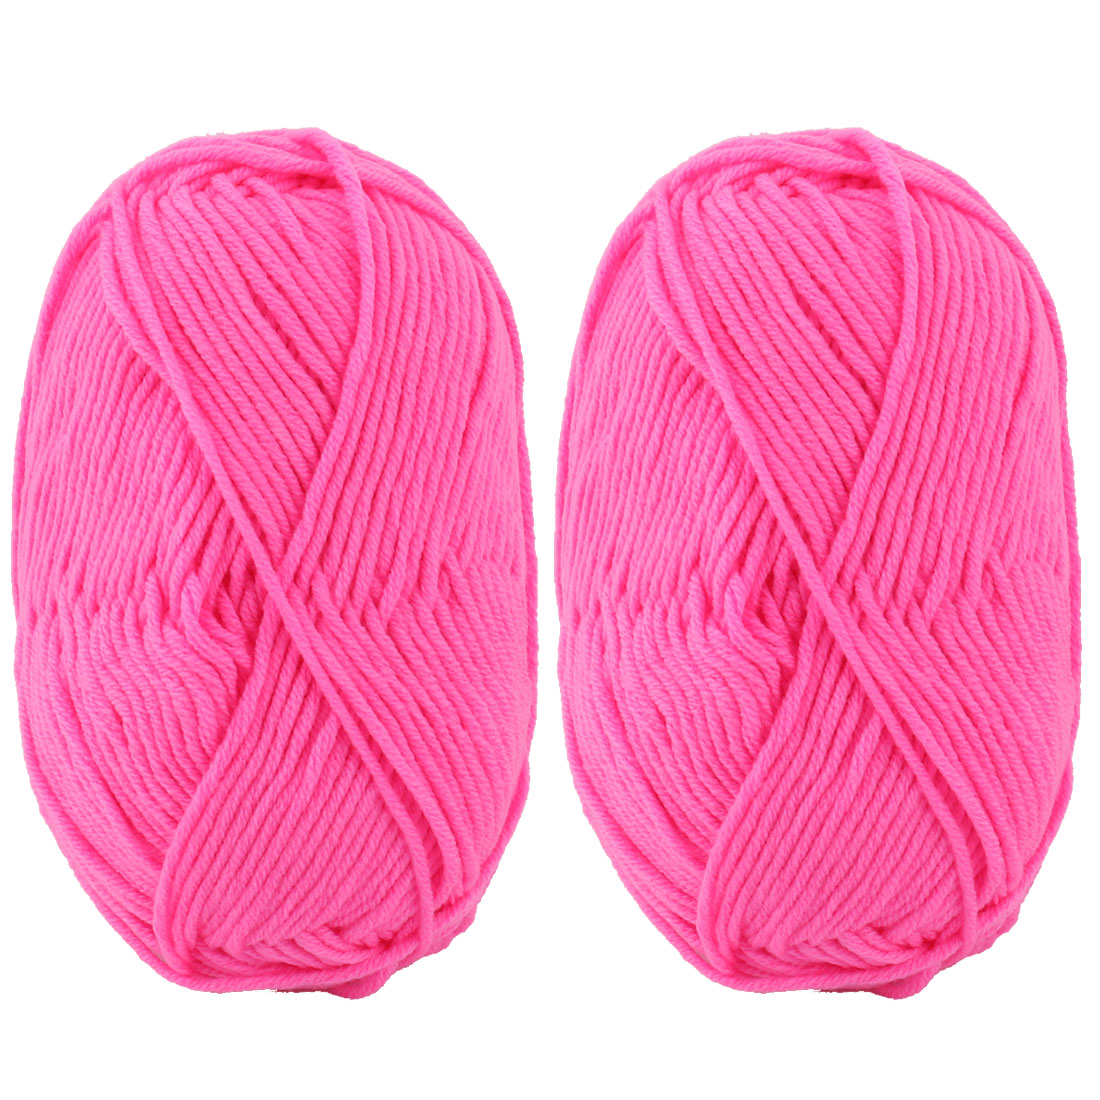 Festival Handmade Scarf Sweater Hat Knitting Yarn String Dark Pink 100g 2pcs